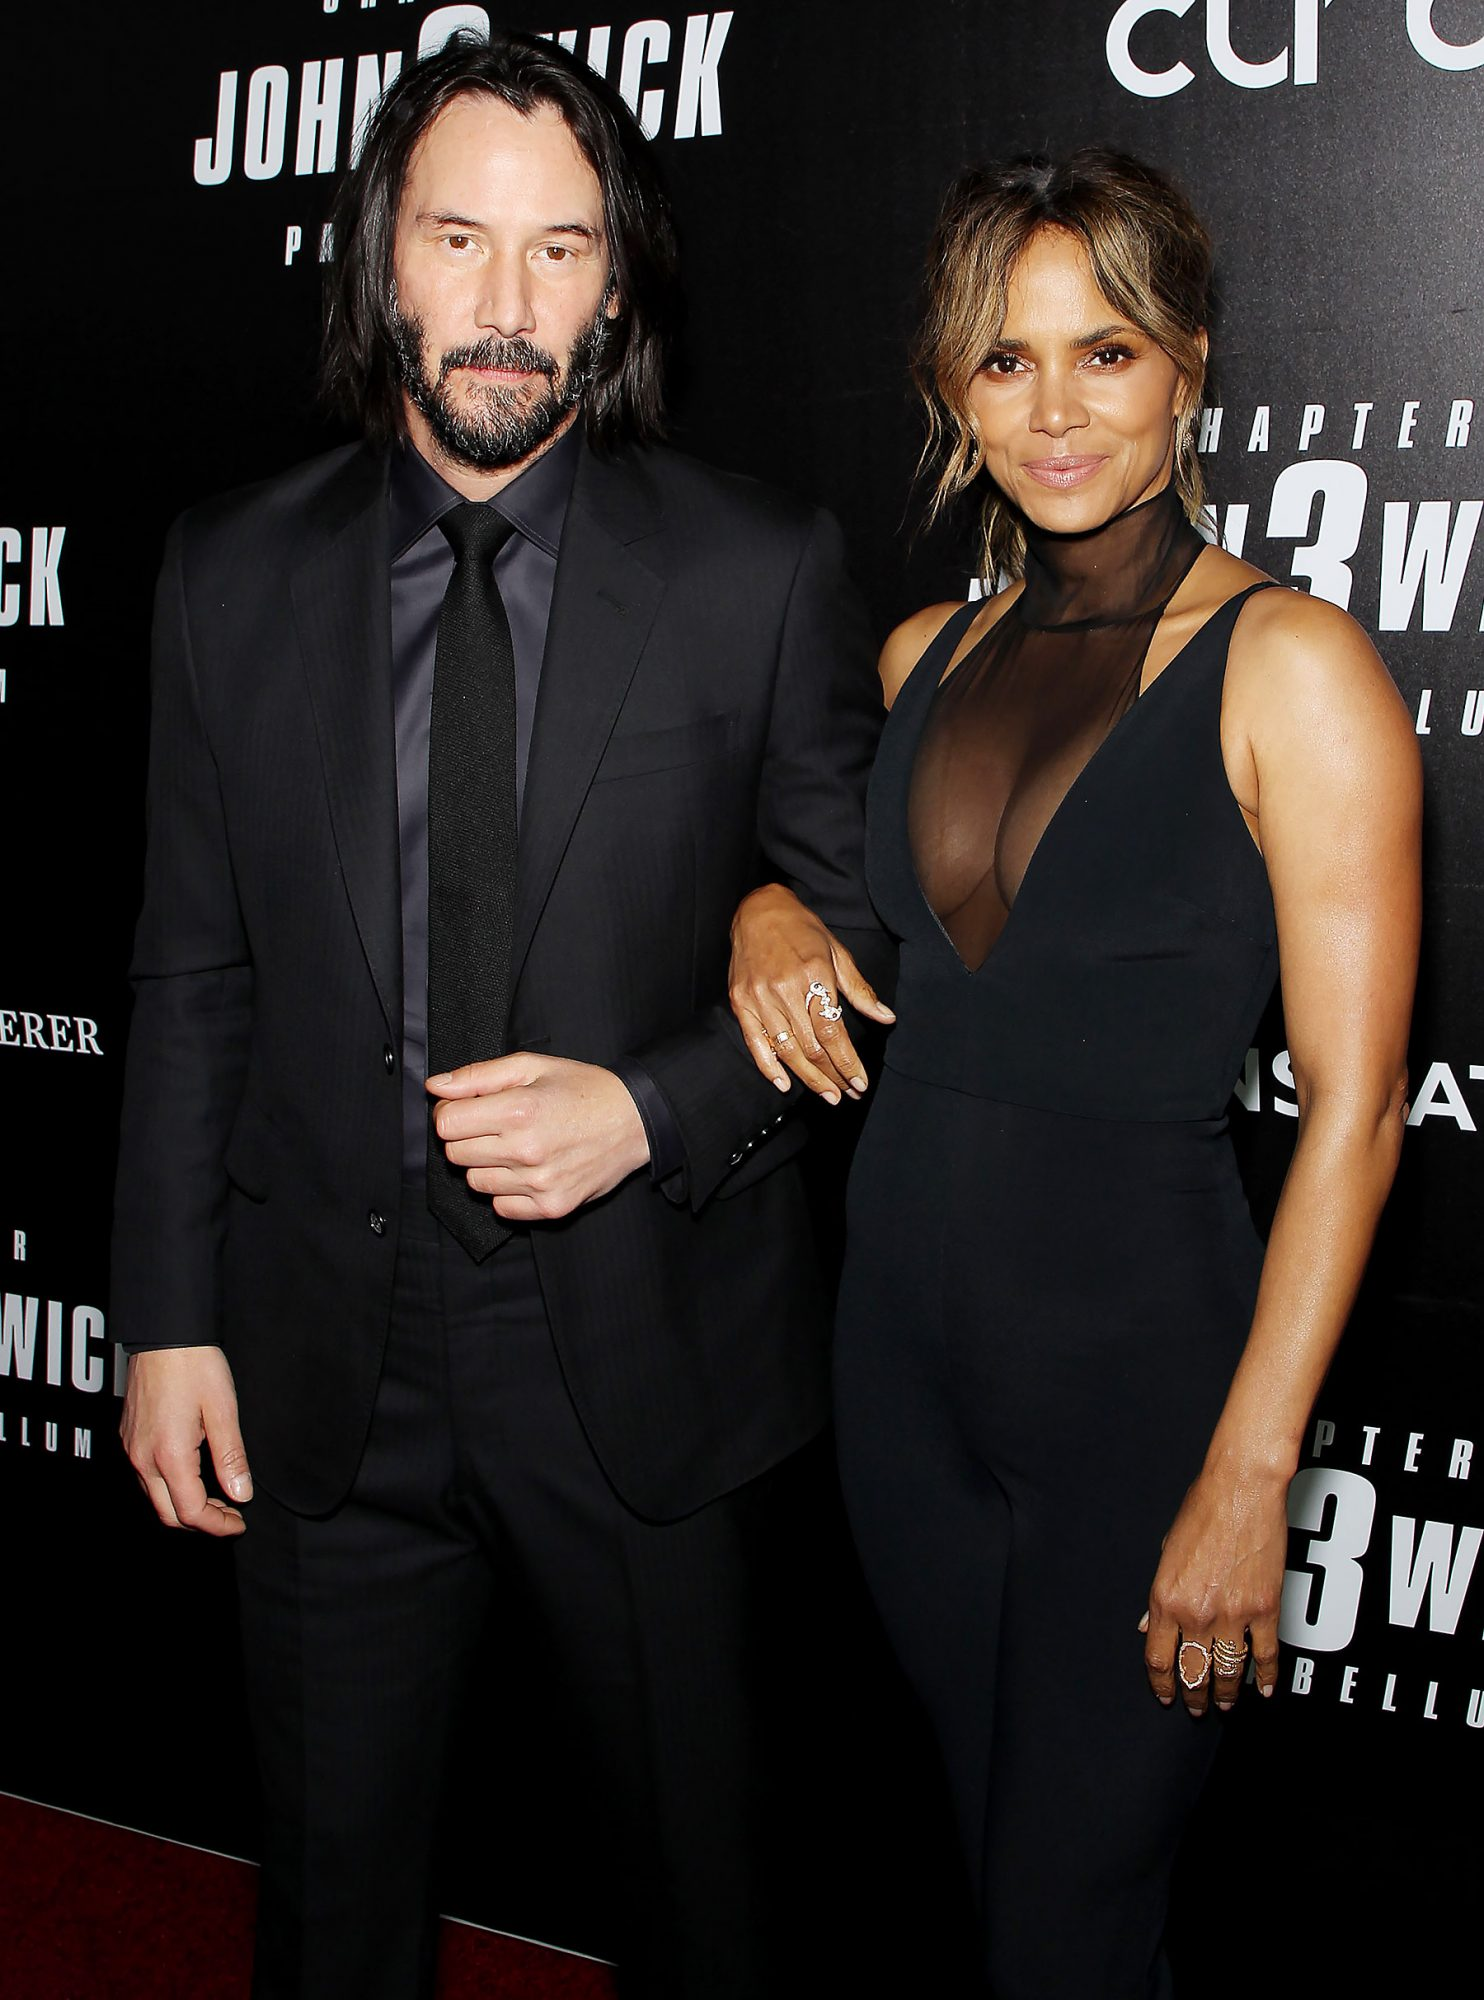 Keanu Reeves and Halle Berry